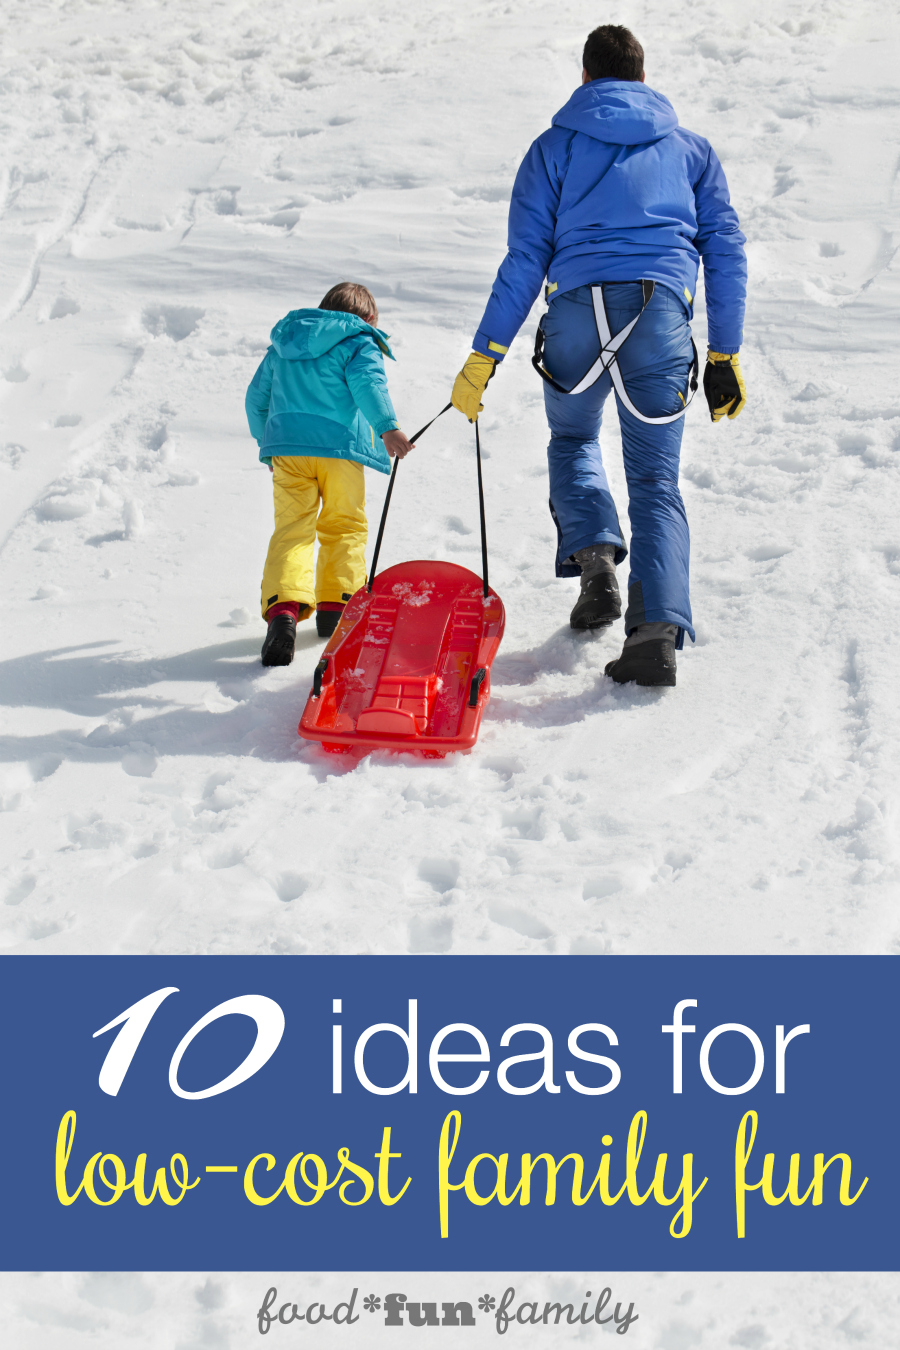 When it comes to having fun, it can be expensive to take your family out for a night on the town. However, it's so important to spend time together as a family because it brings you closer than ever. If you're looking for ways to bring your family close together, check out these 10 ideas for low cost family fun.